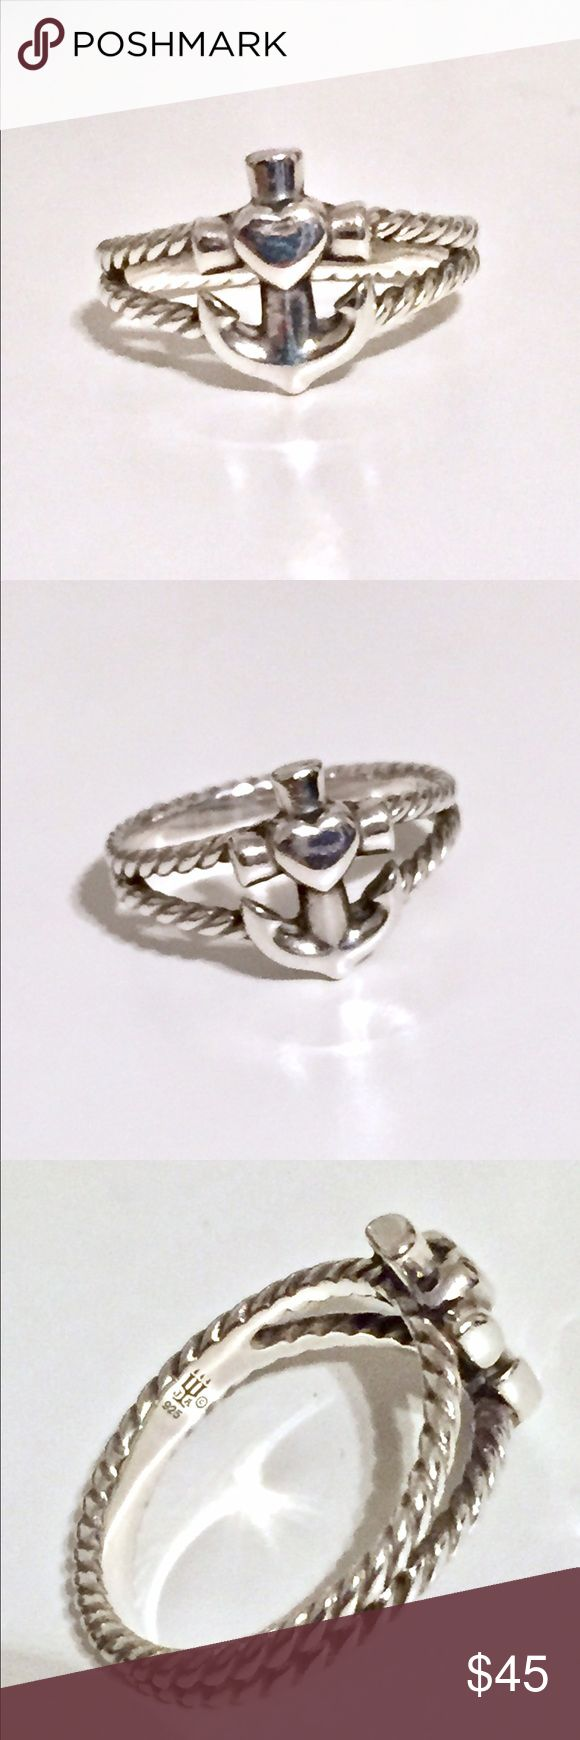 james avery rings james avery wedding bands James Avery Anchor Ring Size 9 James Avery Anchor Ring Size 9 Sterling